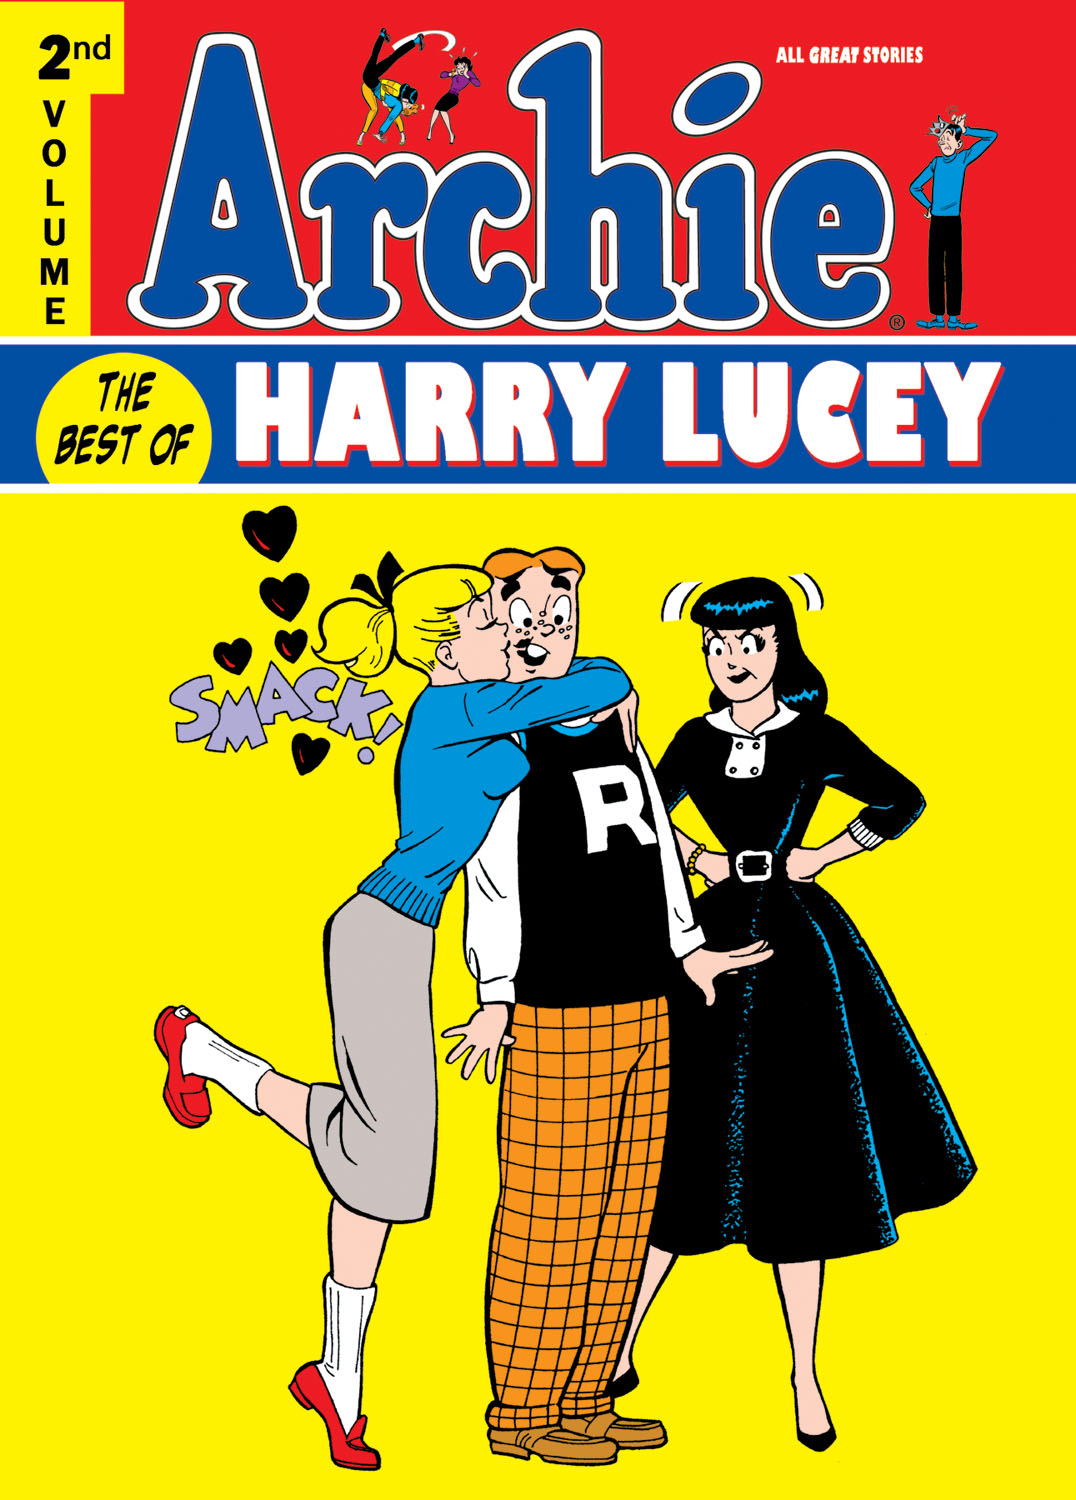 Archie: Best of Harry Lucey